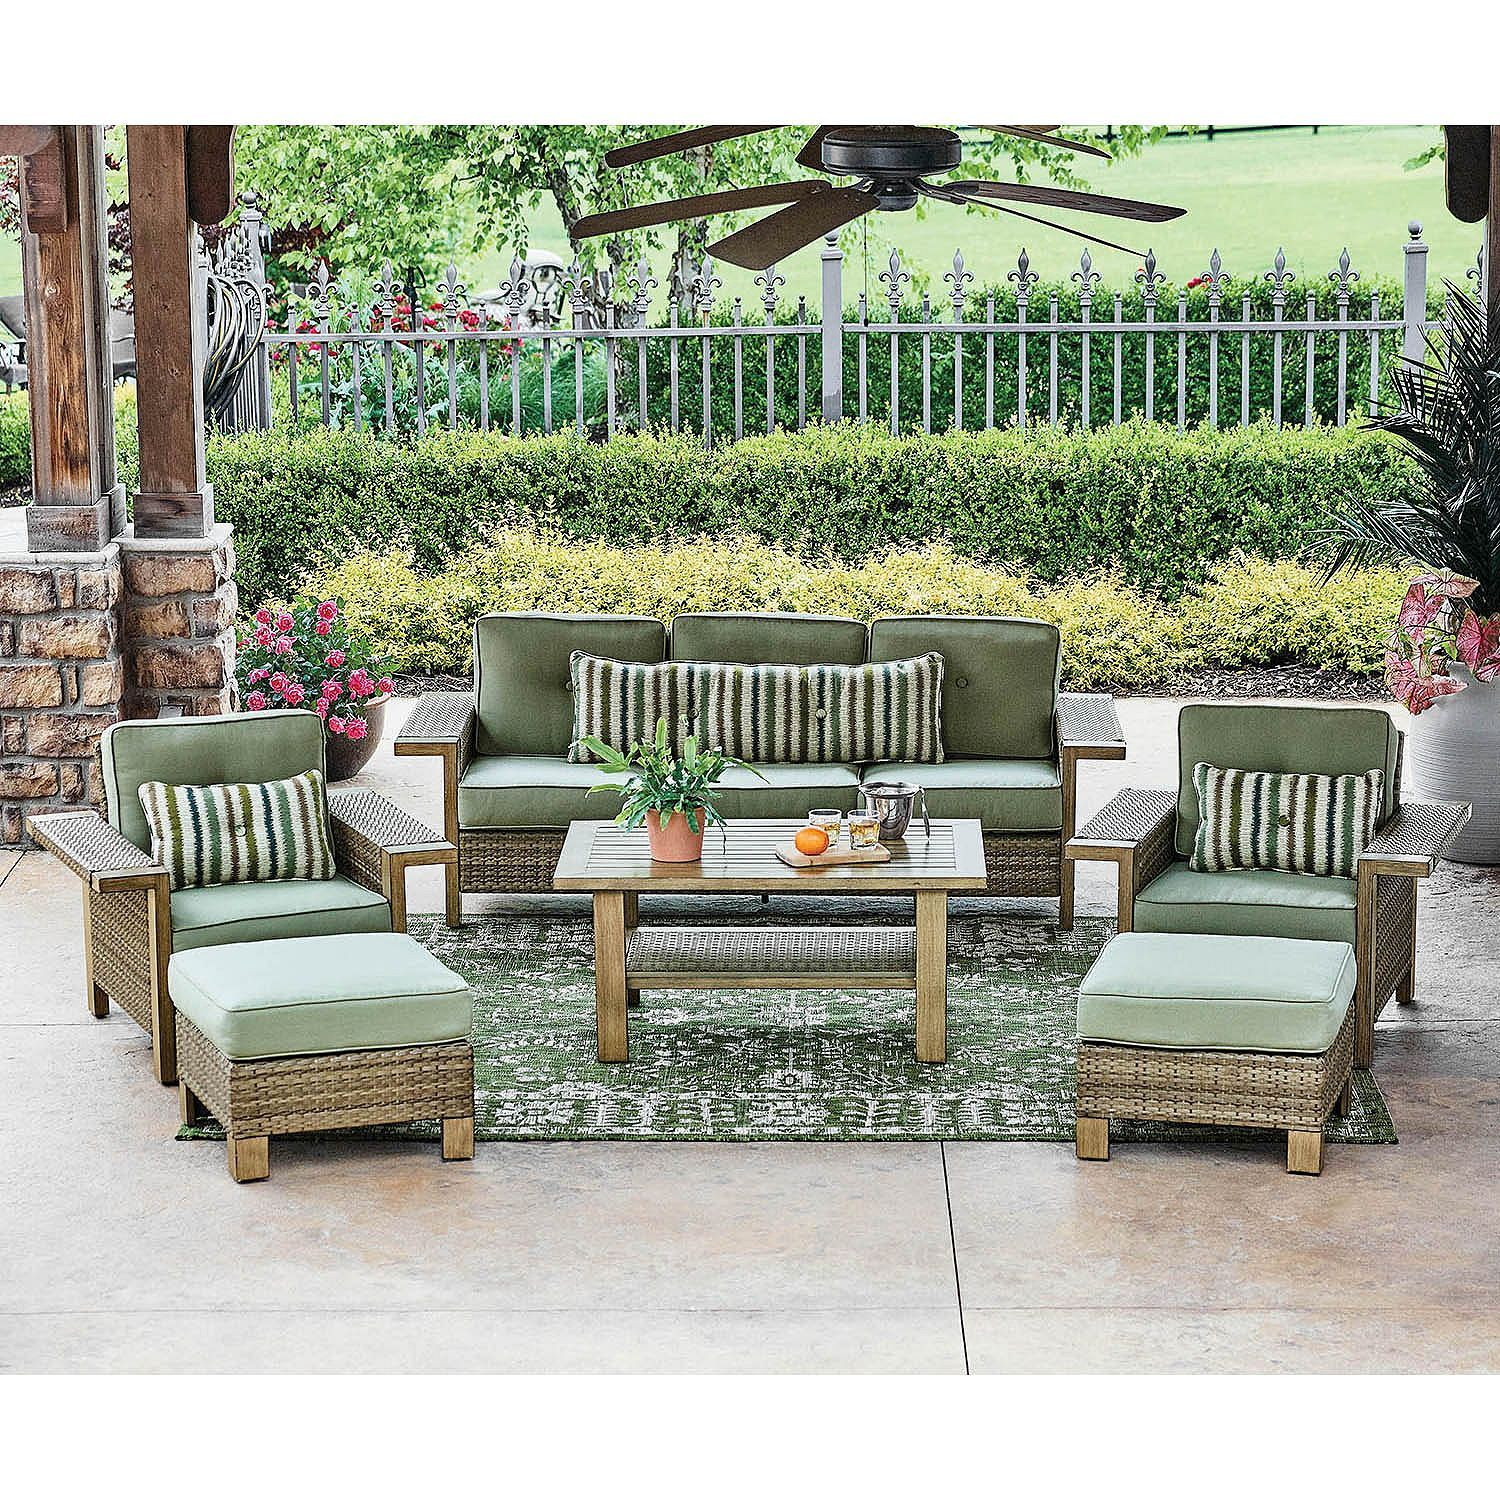 Member s Mark Agio Collection Manchester Seating Set Sam s Club